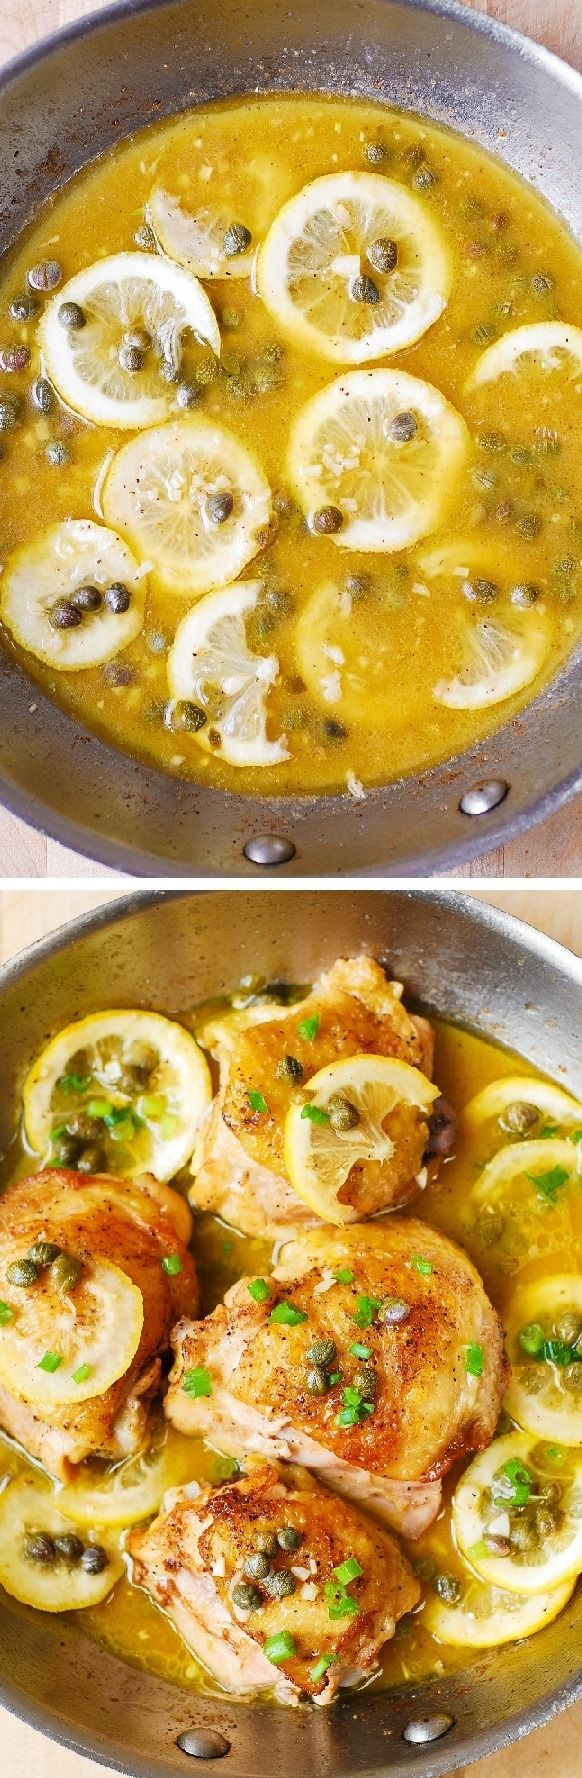 Italian Chicken Picatta - pan-fried chicken thighs with garlic, lemon, and capers in a juicy chicken broth. So easy to make, and the chicken comes out moist and juicy every time! #BHG #sponsored